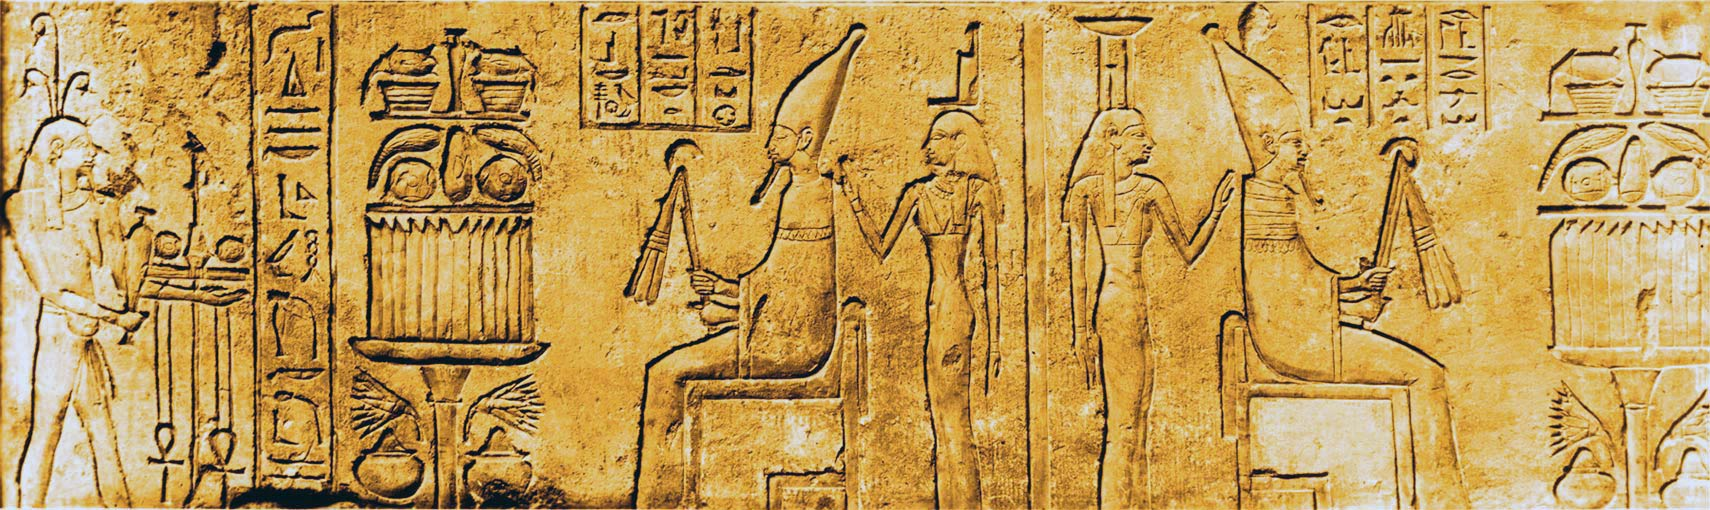 Ancient relief from an Egyptian Temple